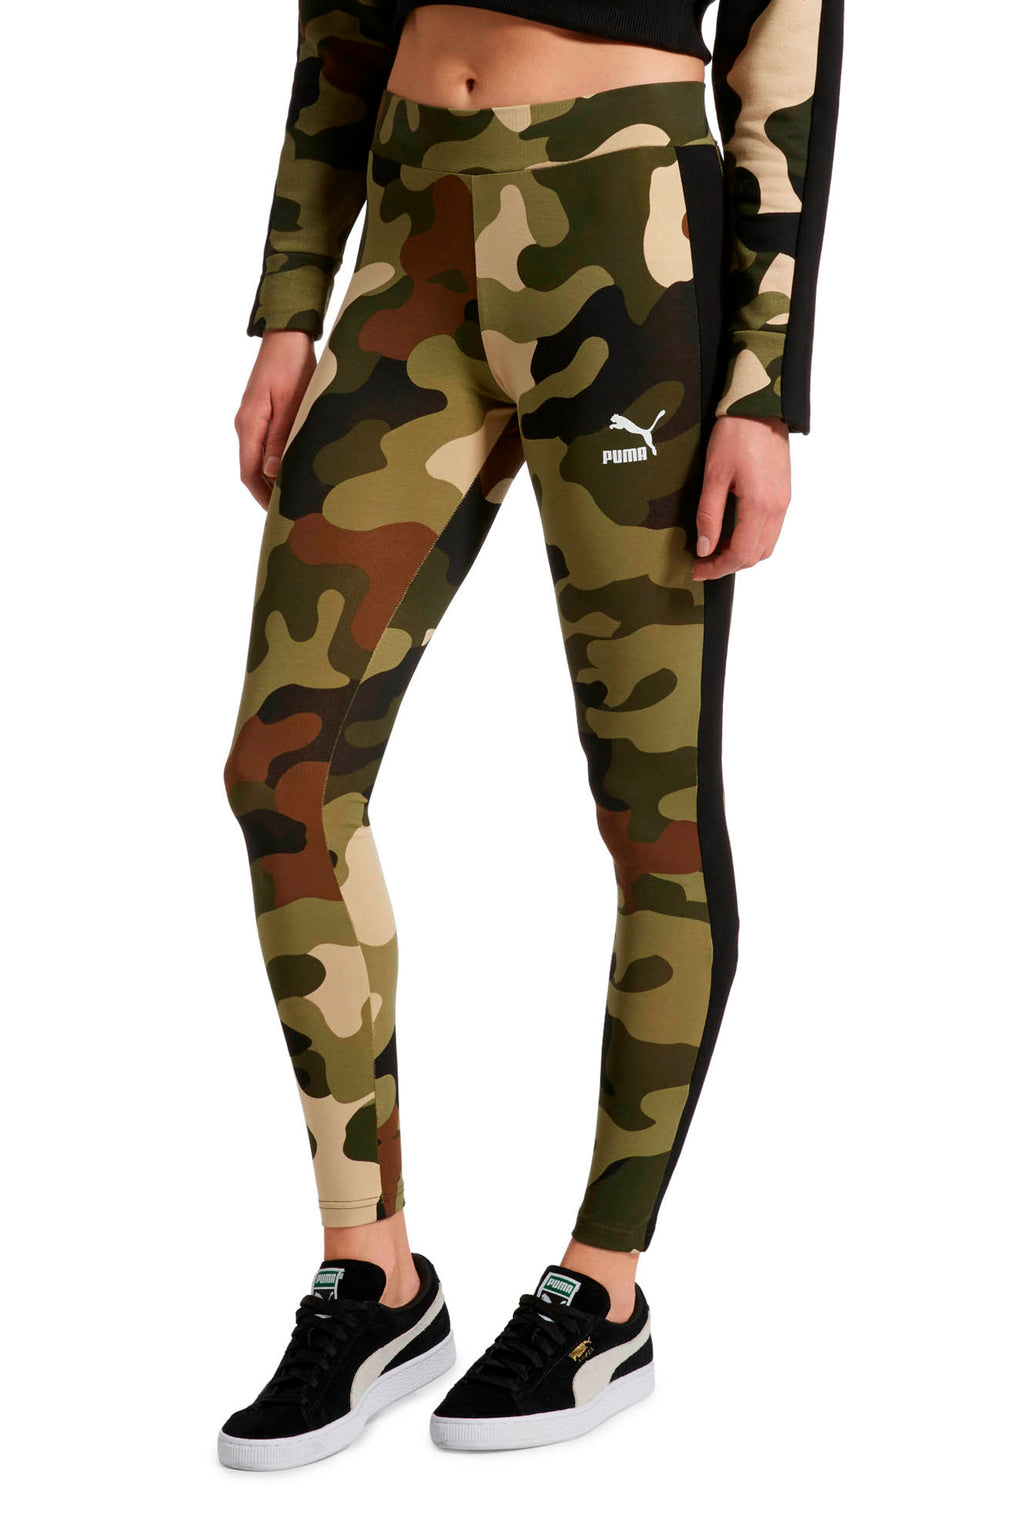 Puma Womens Wild Pack T7 Legging